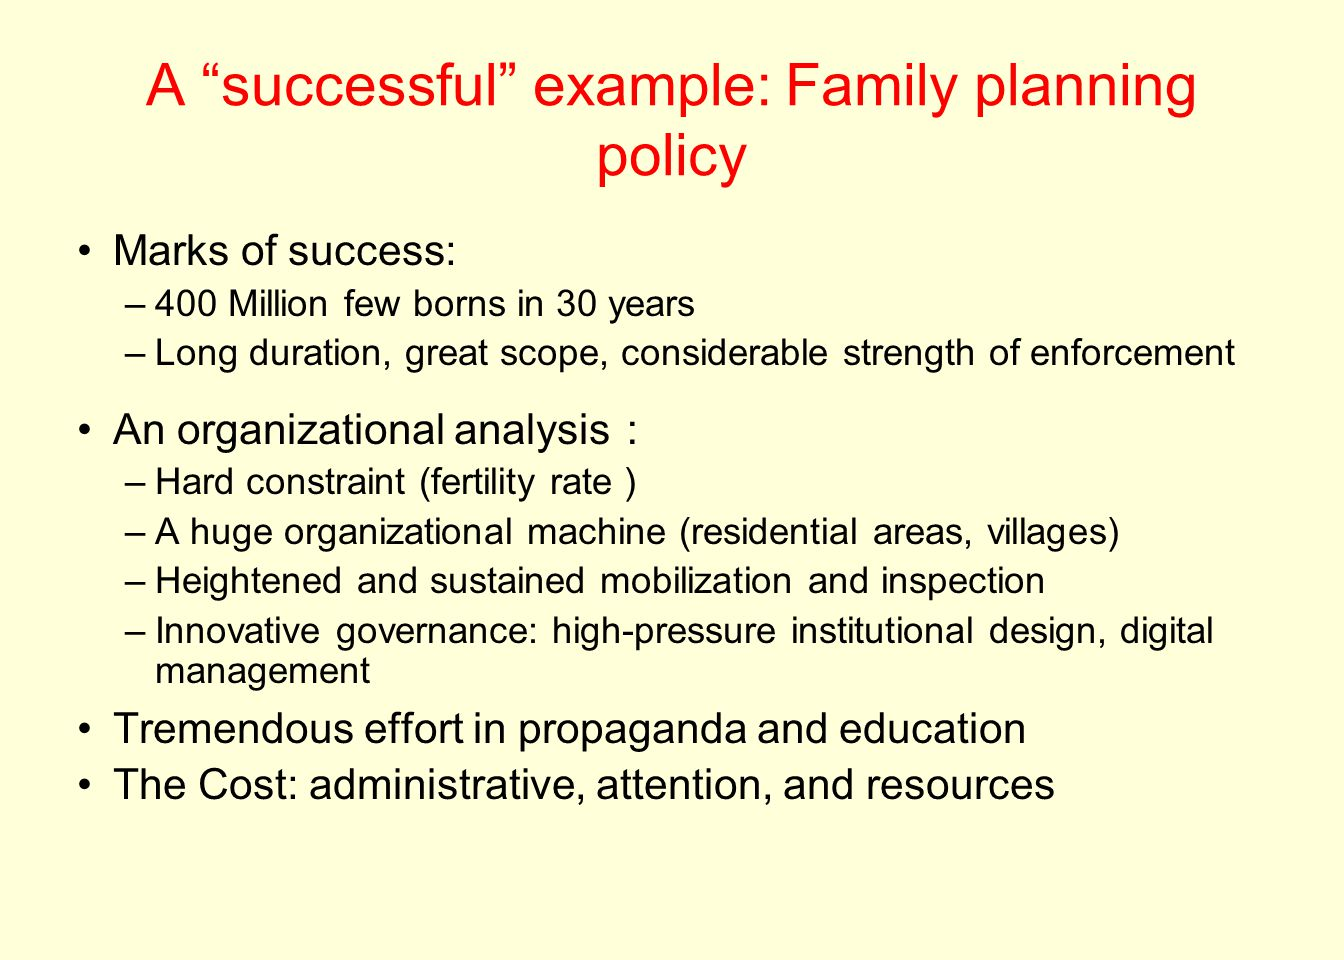 A successful example: Family planning policy